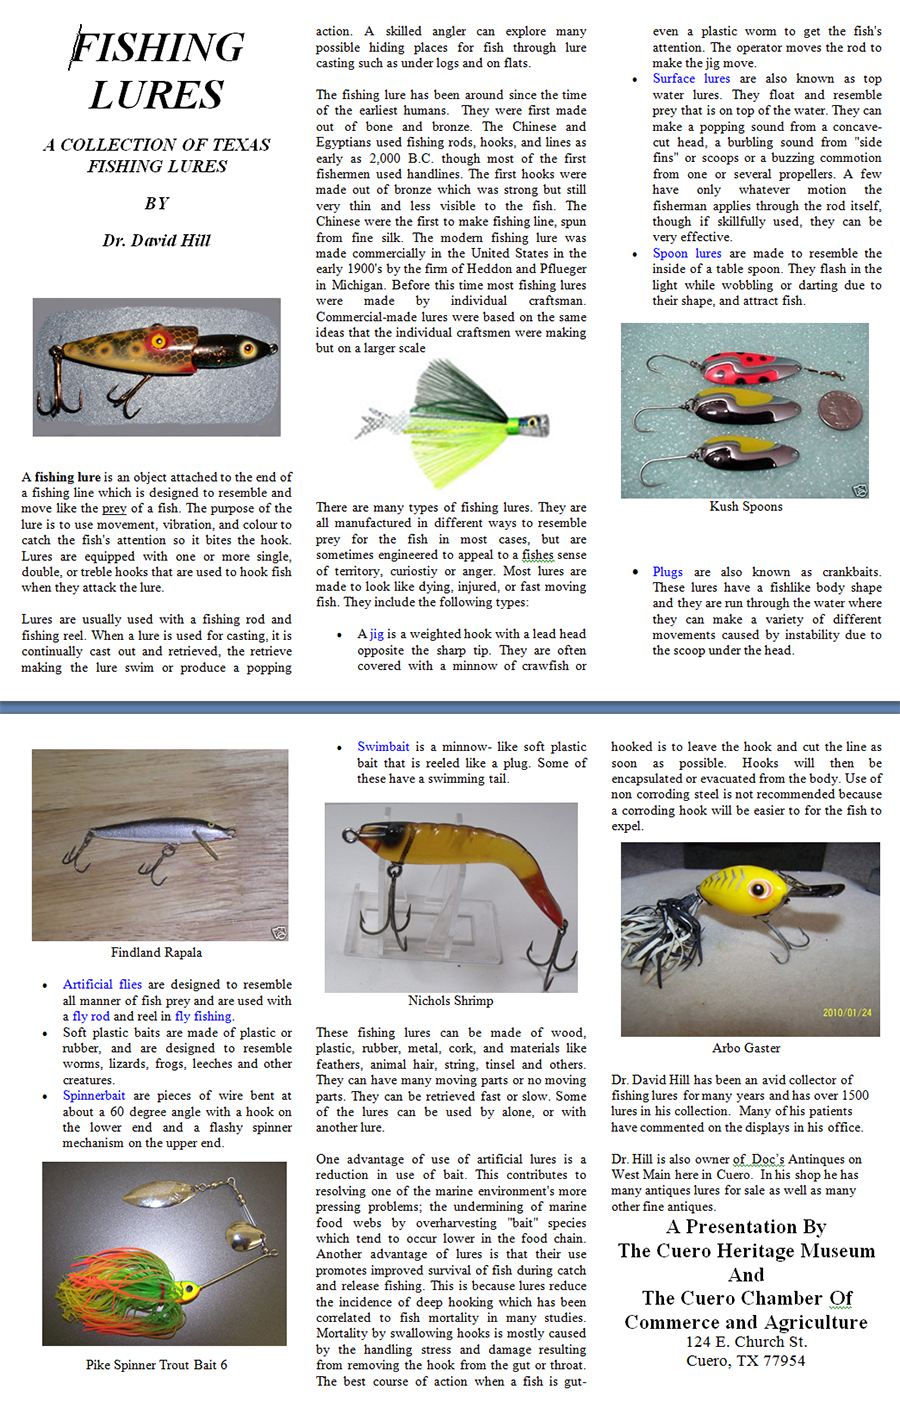 a collection of texas fishing lures permanent collection